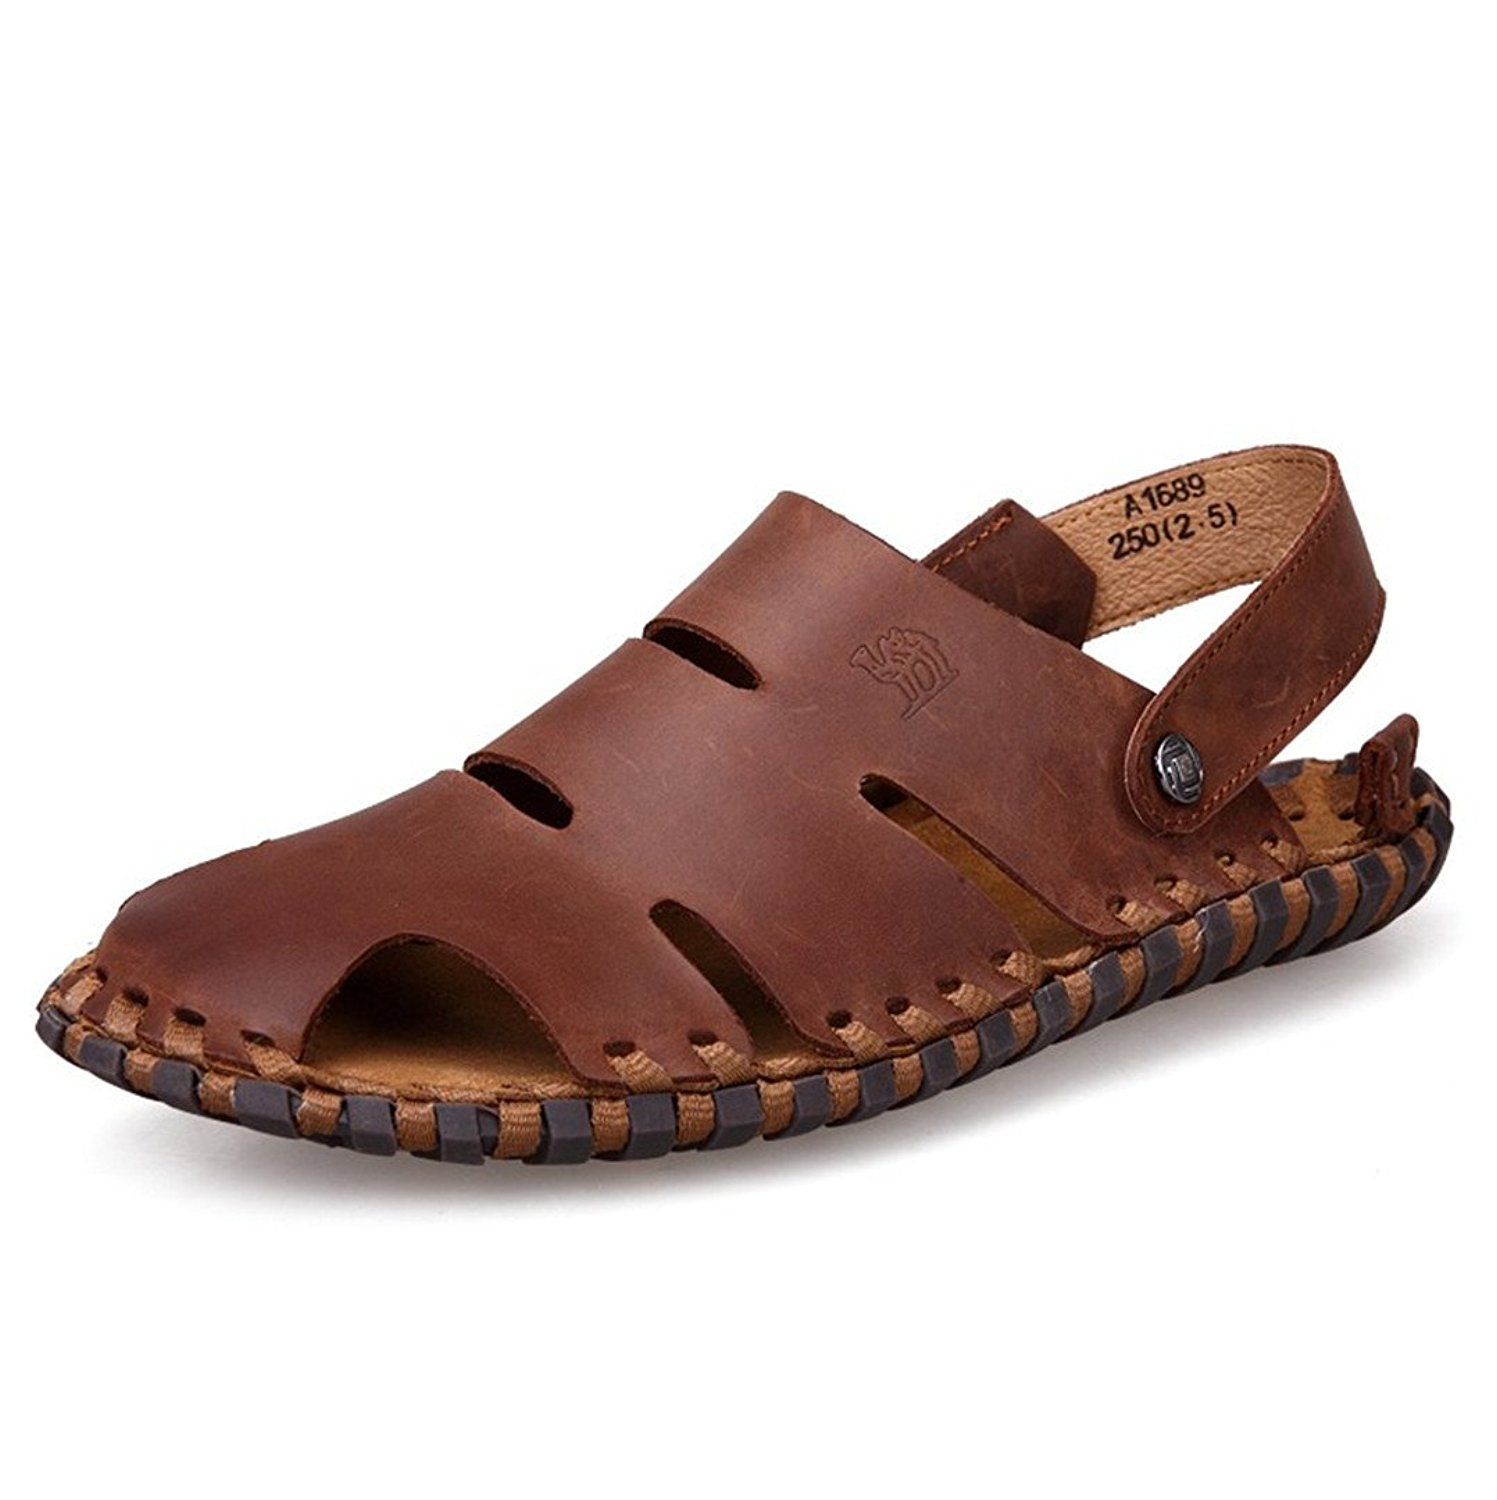 ed44c5ed934b Get Quotations · Retro New Men Sandals Slippers Genuine Leather Cowhide  Sandals Outdoor Casual Mens summer shoes soft bottom